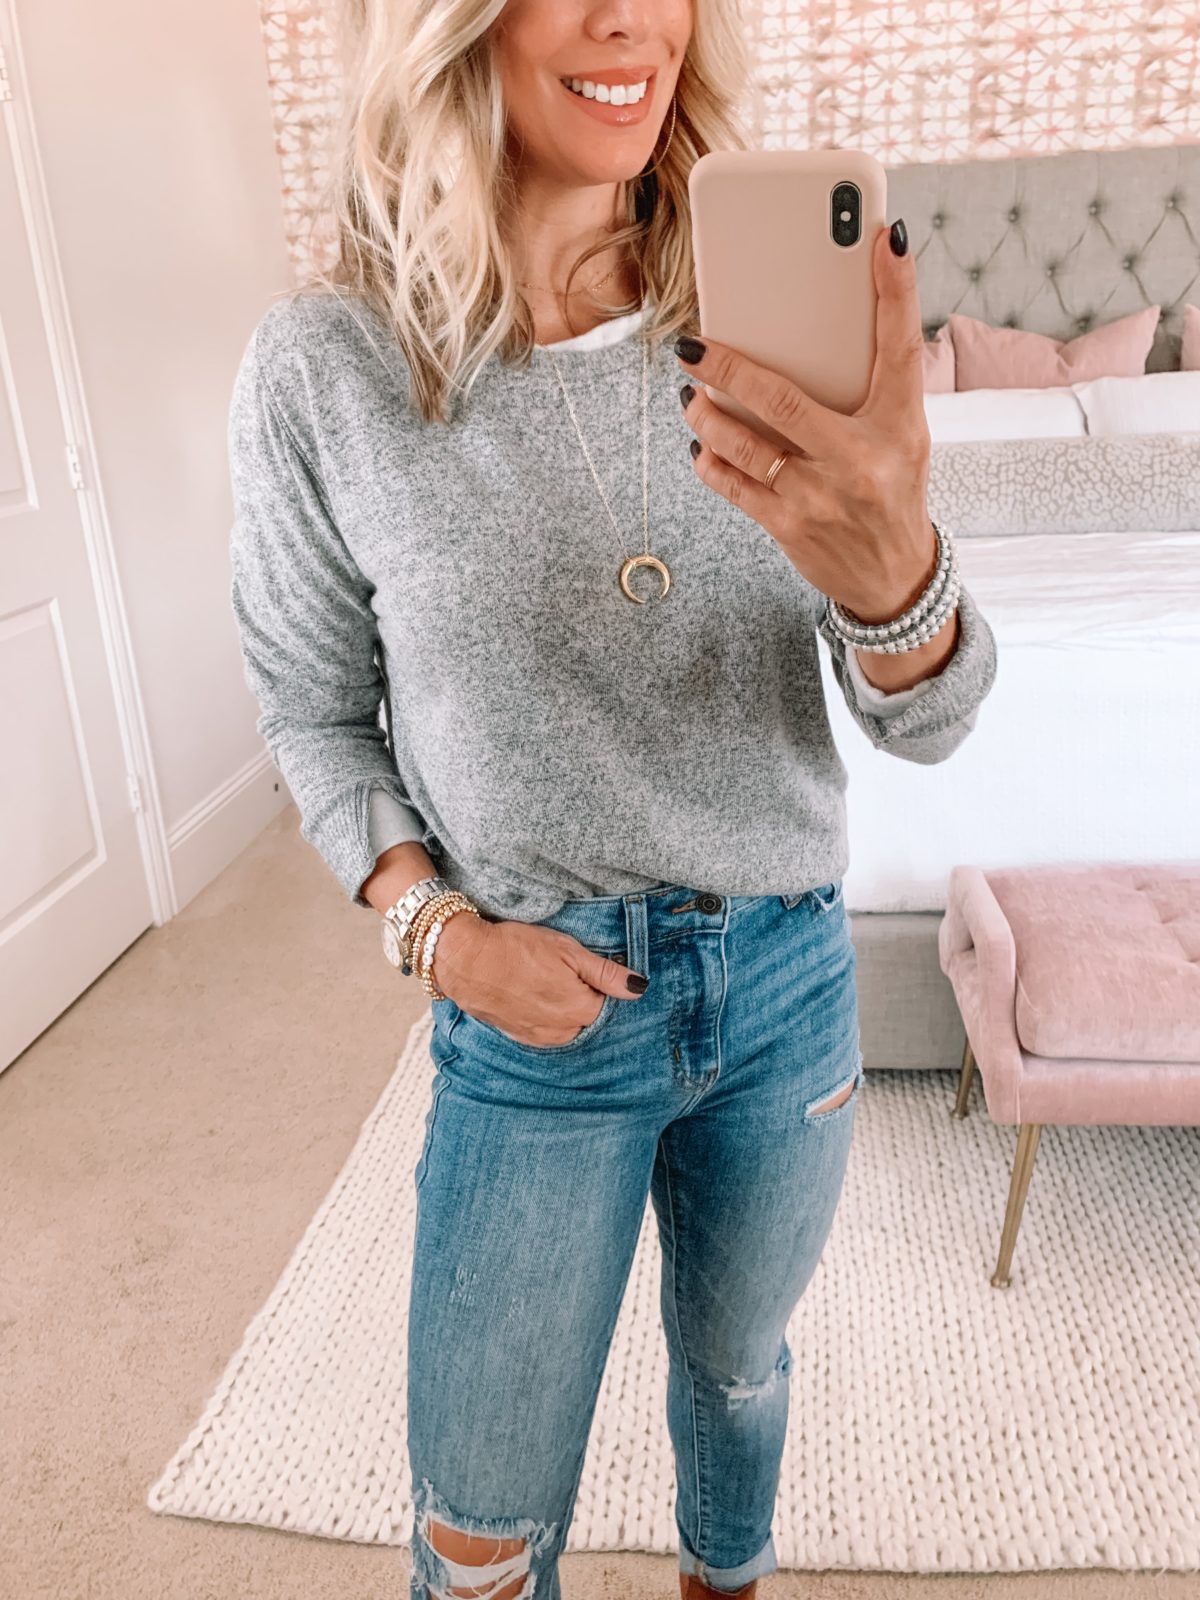 Red Dress Fashion Finds, Sweater, Jeans